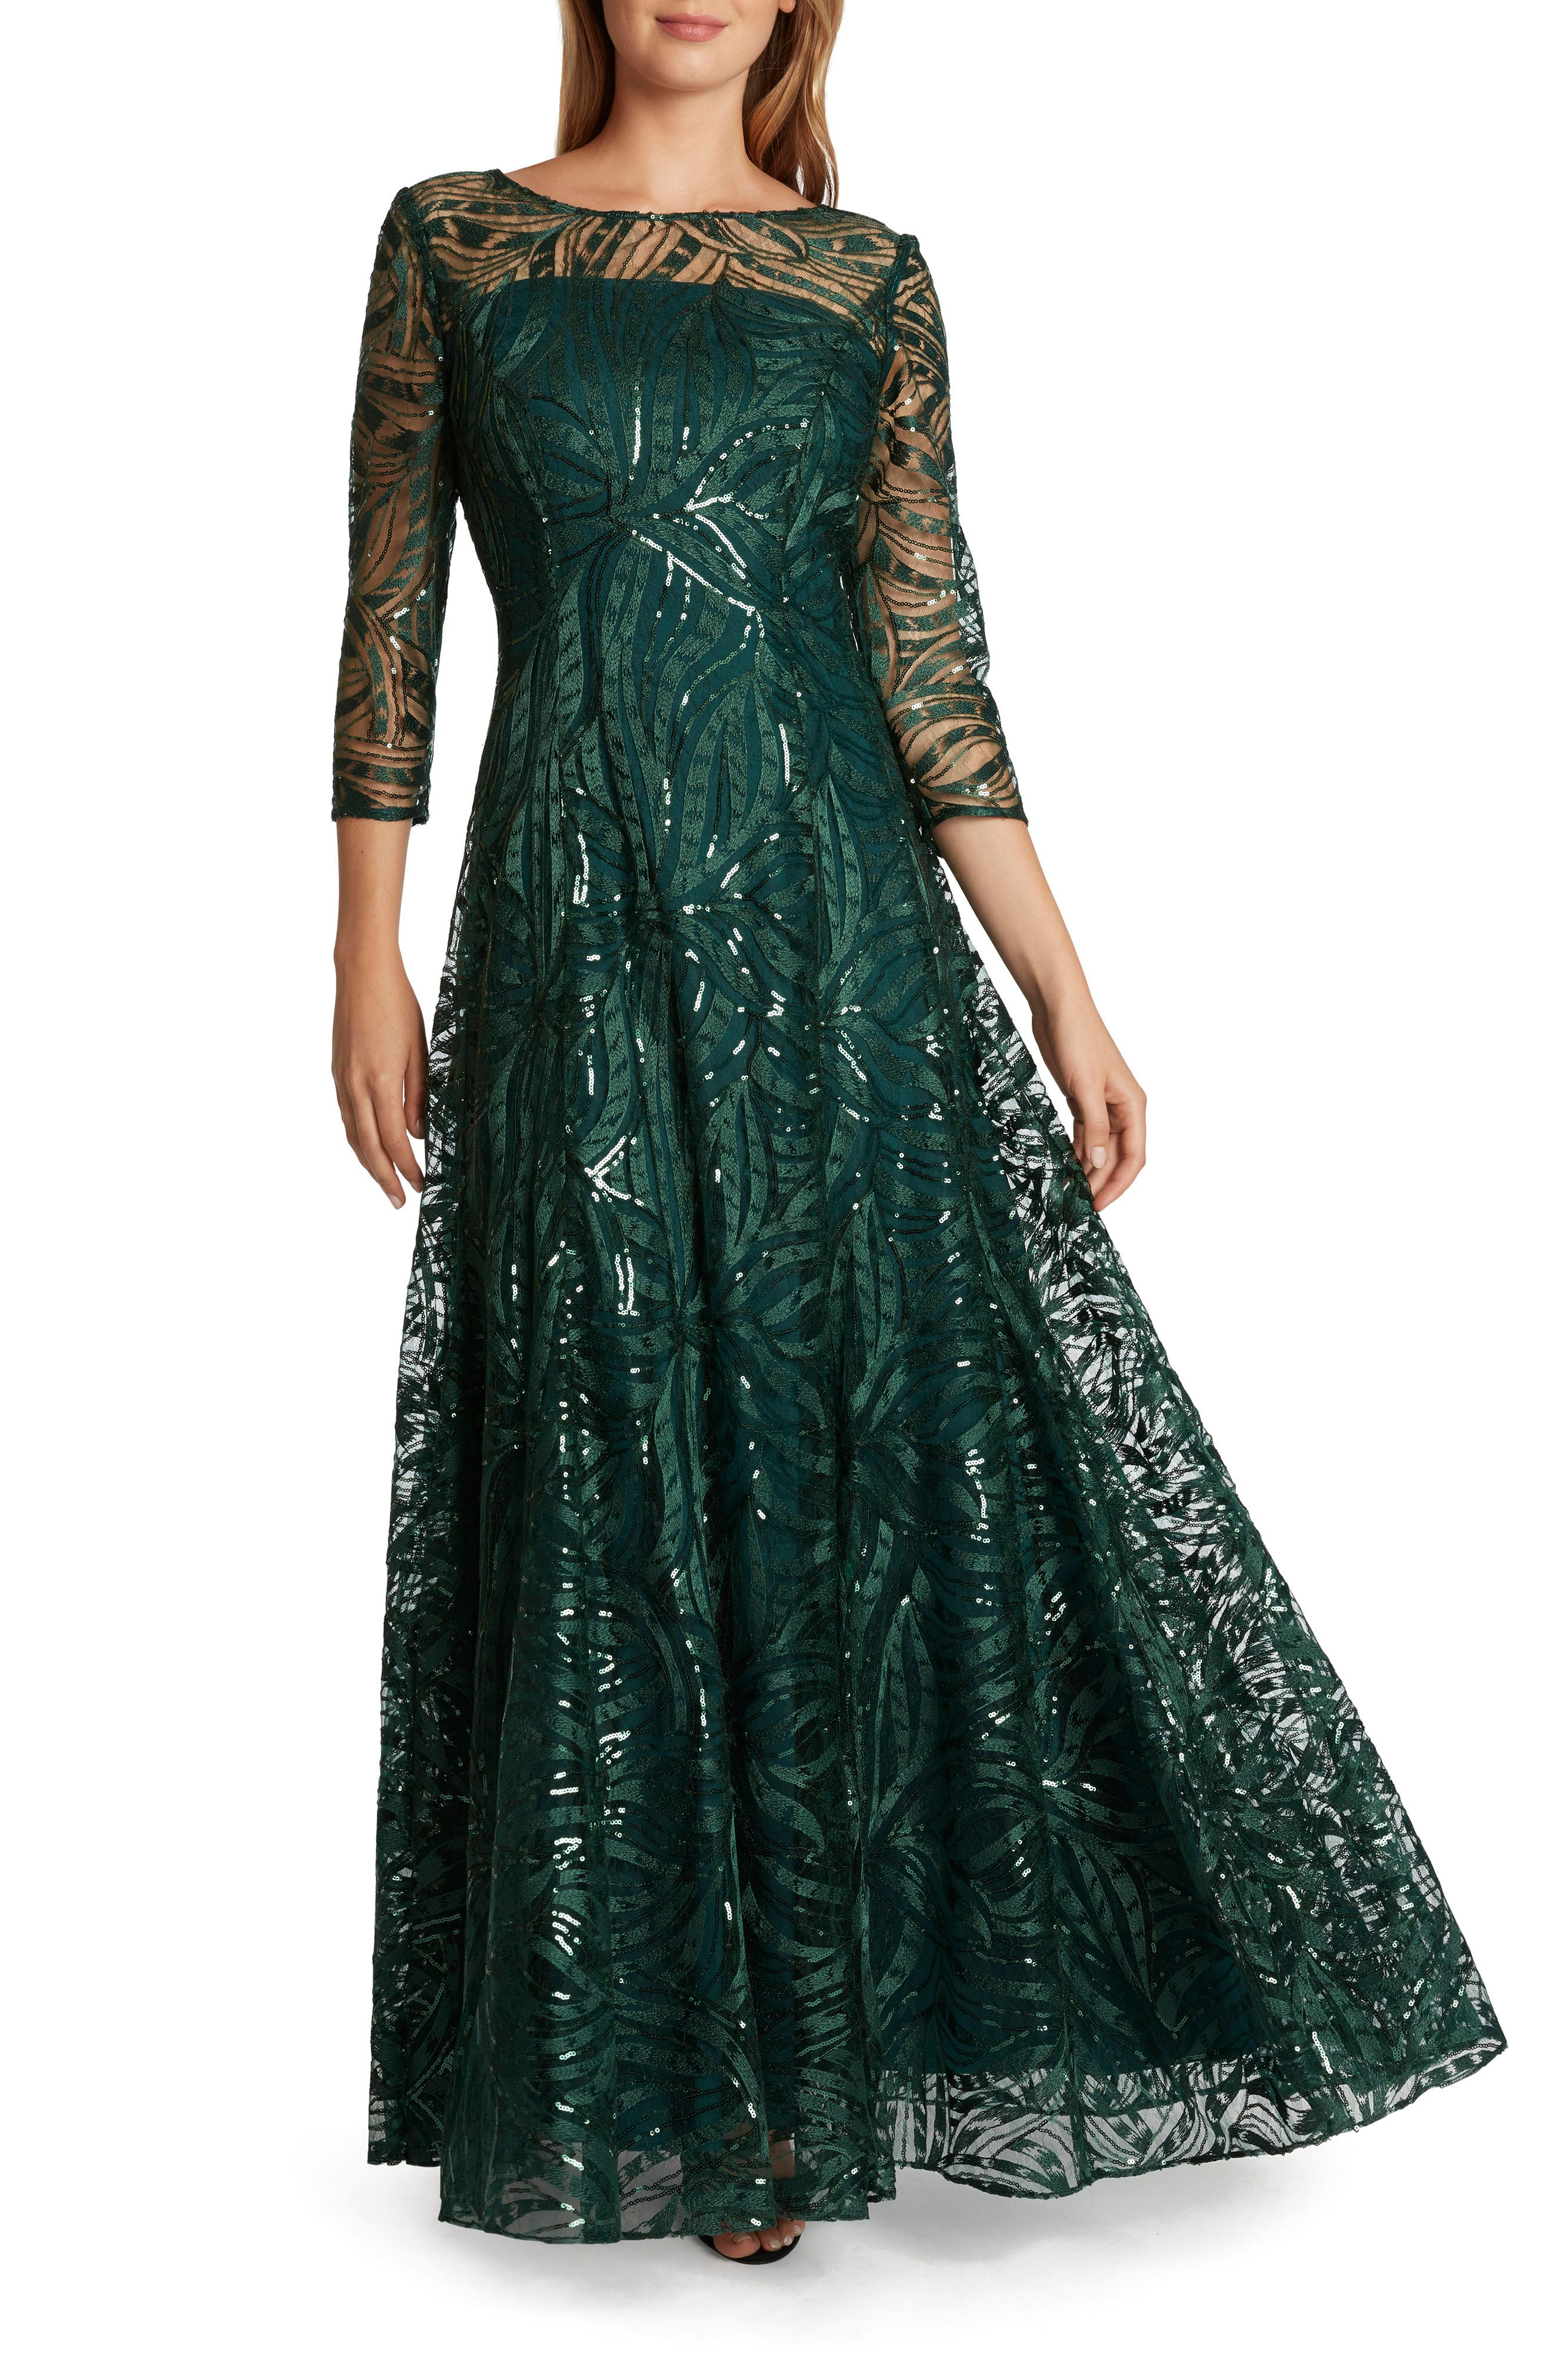 Vintage Prom Dresses, Homecoming Dress Womens Tahari Embroidered Sequin A-Line Gown Size 2 - Green $278.00 AT vintagedancer.com